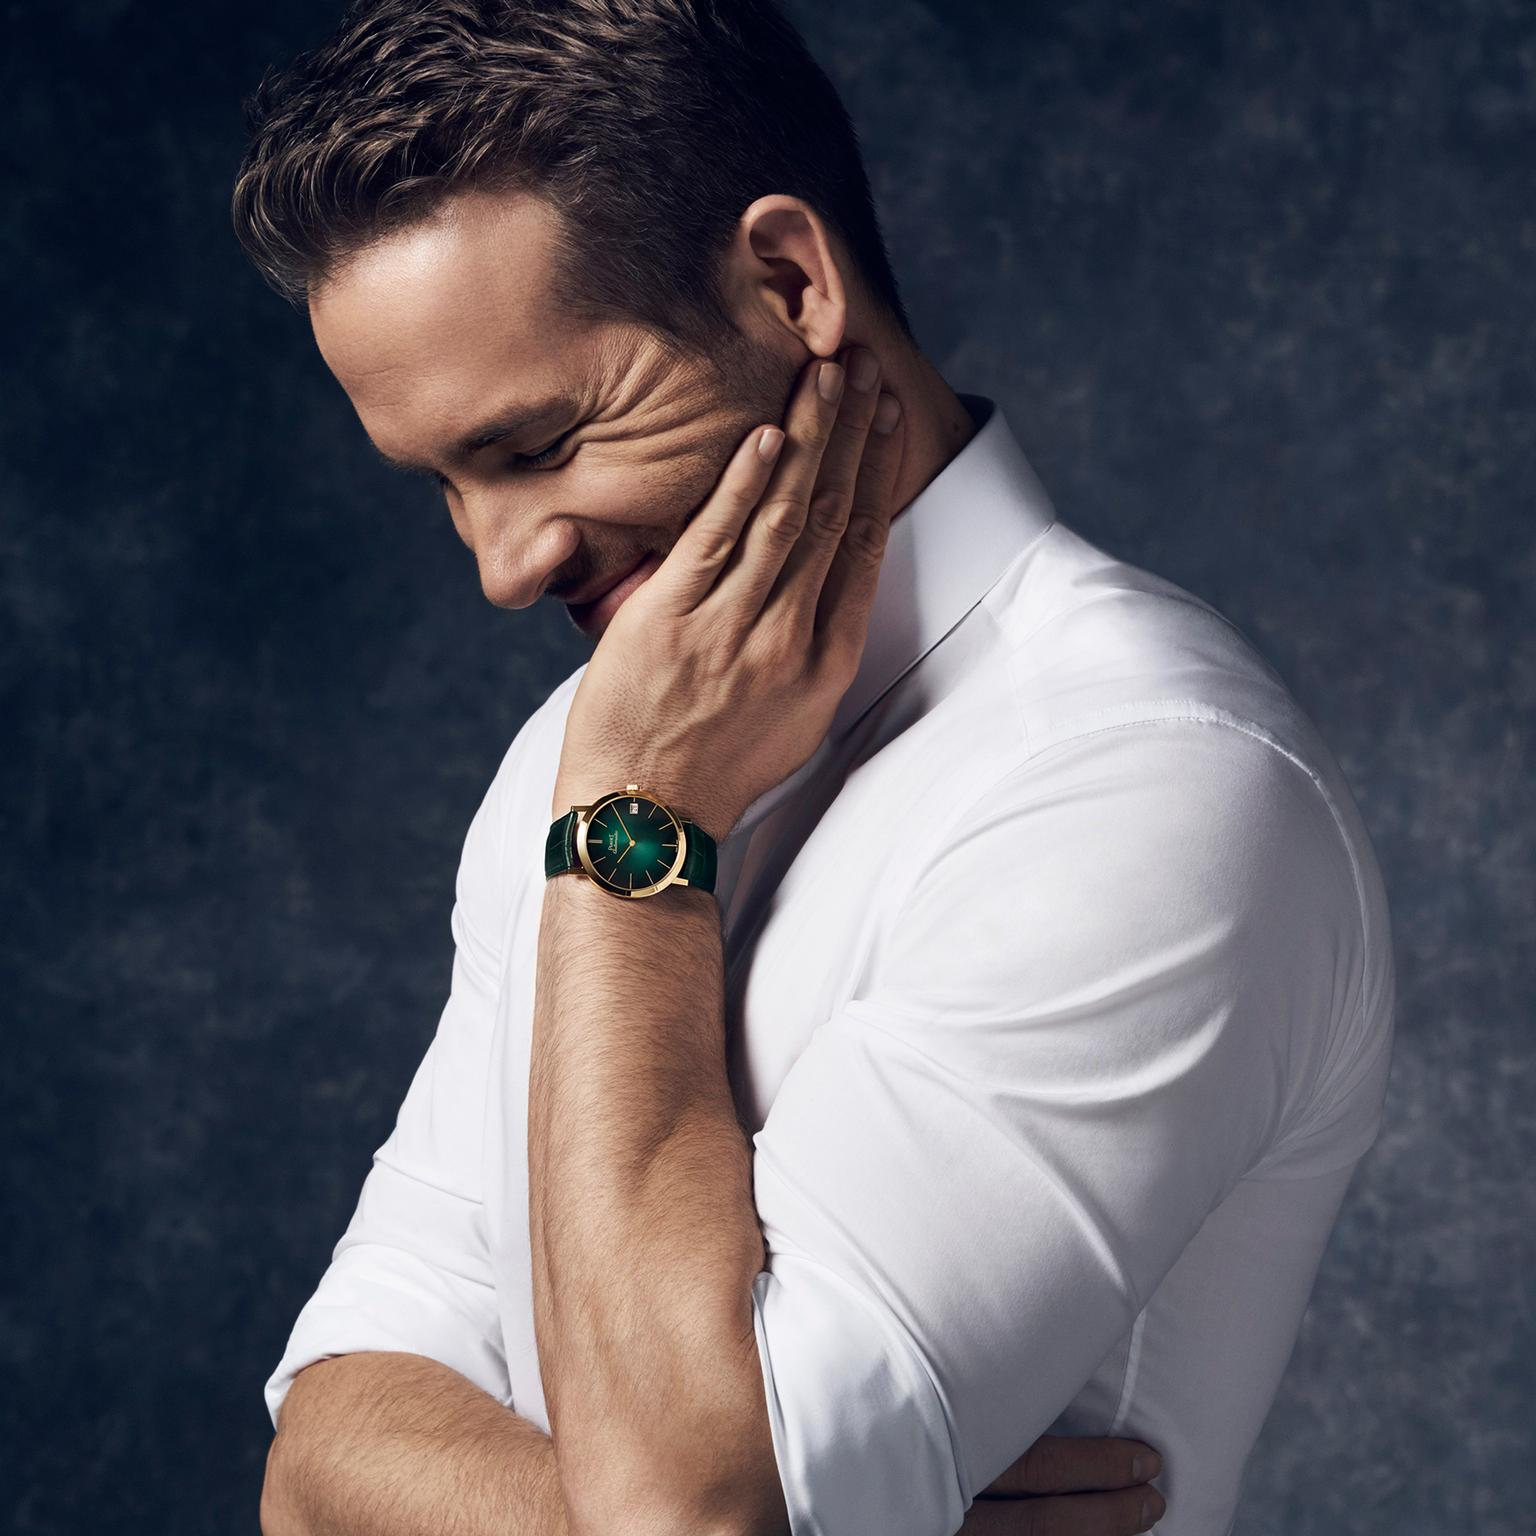 International brand ambassador Ryan Reynolds wears a Piaget Altiplano watch with a green dial